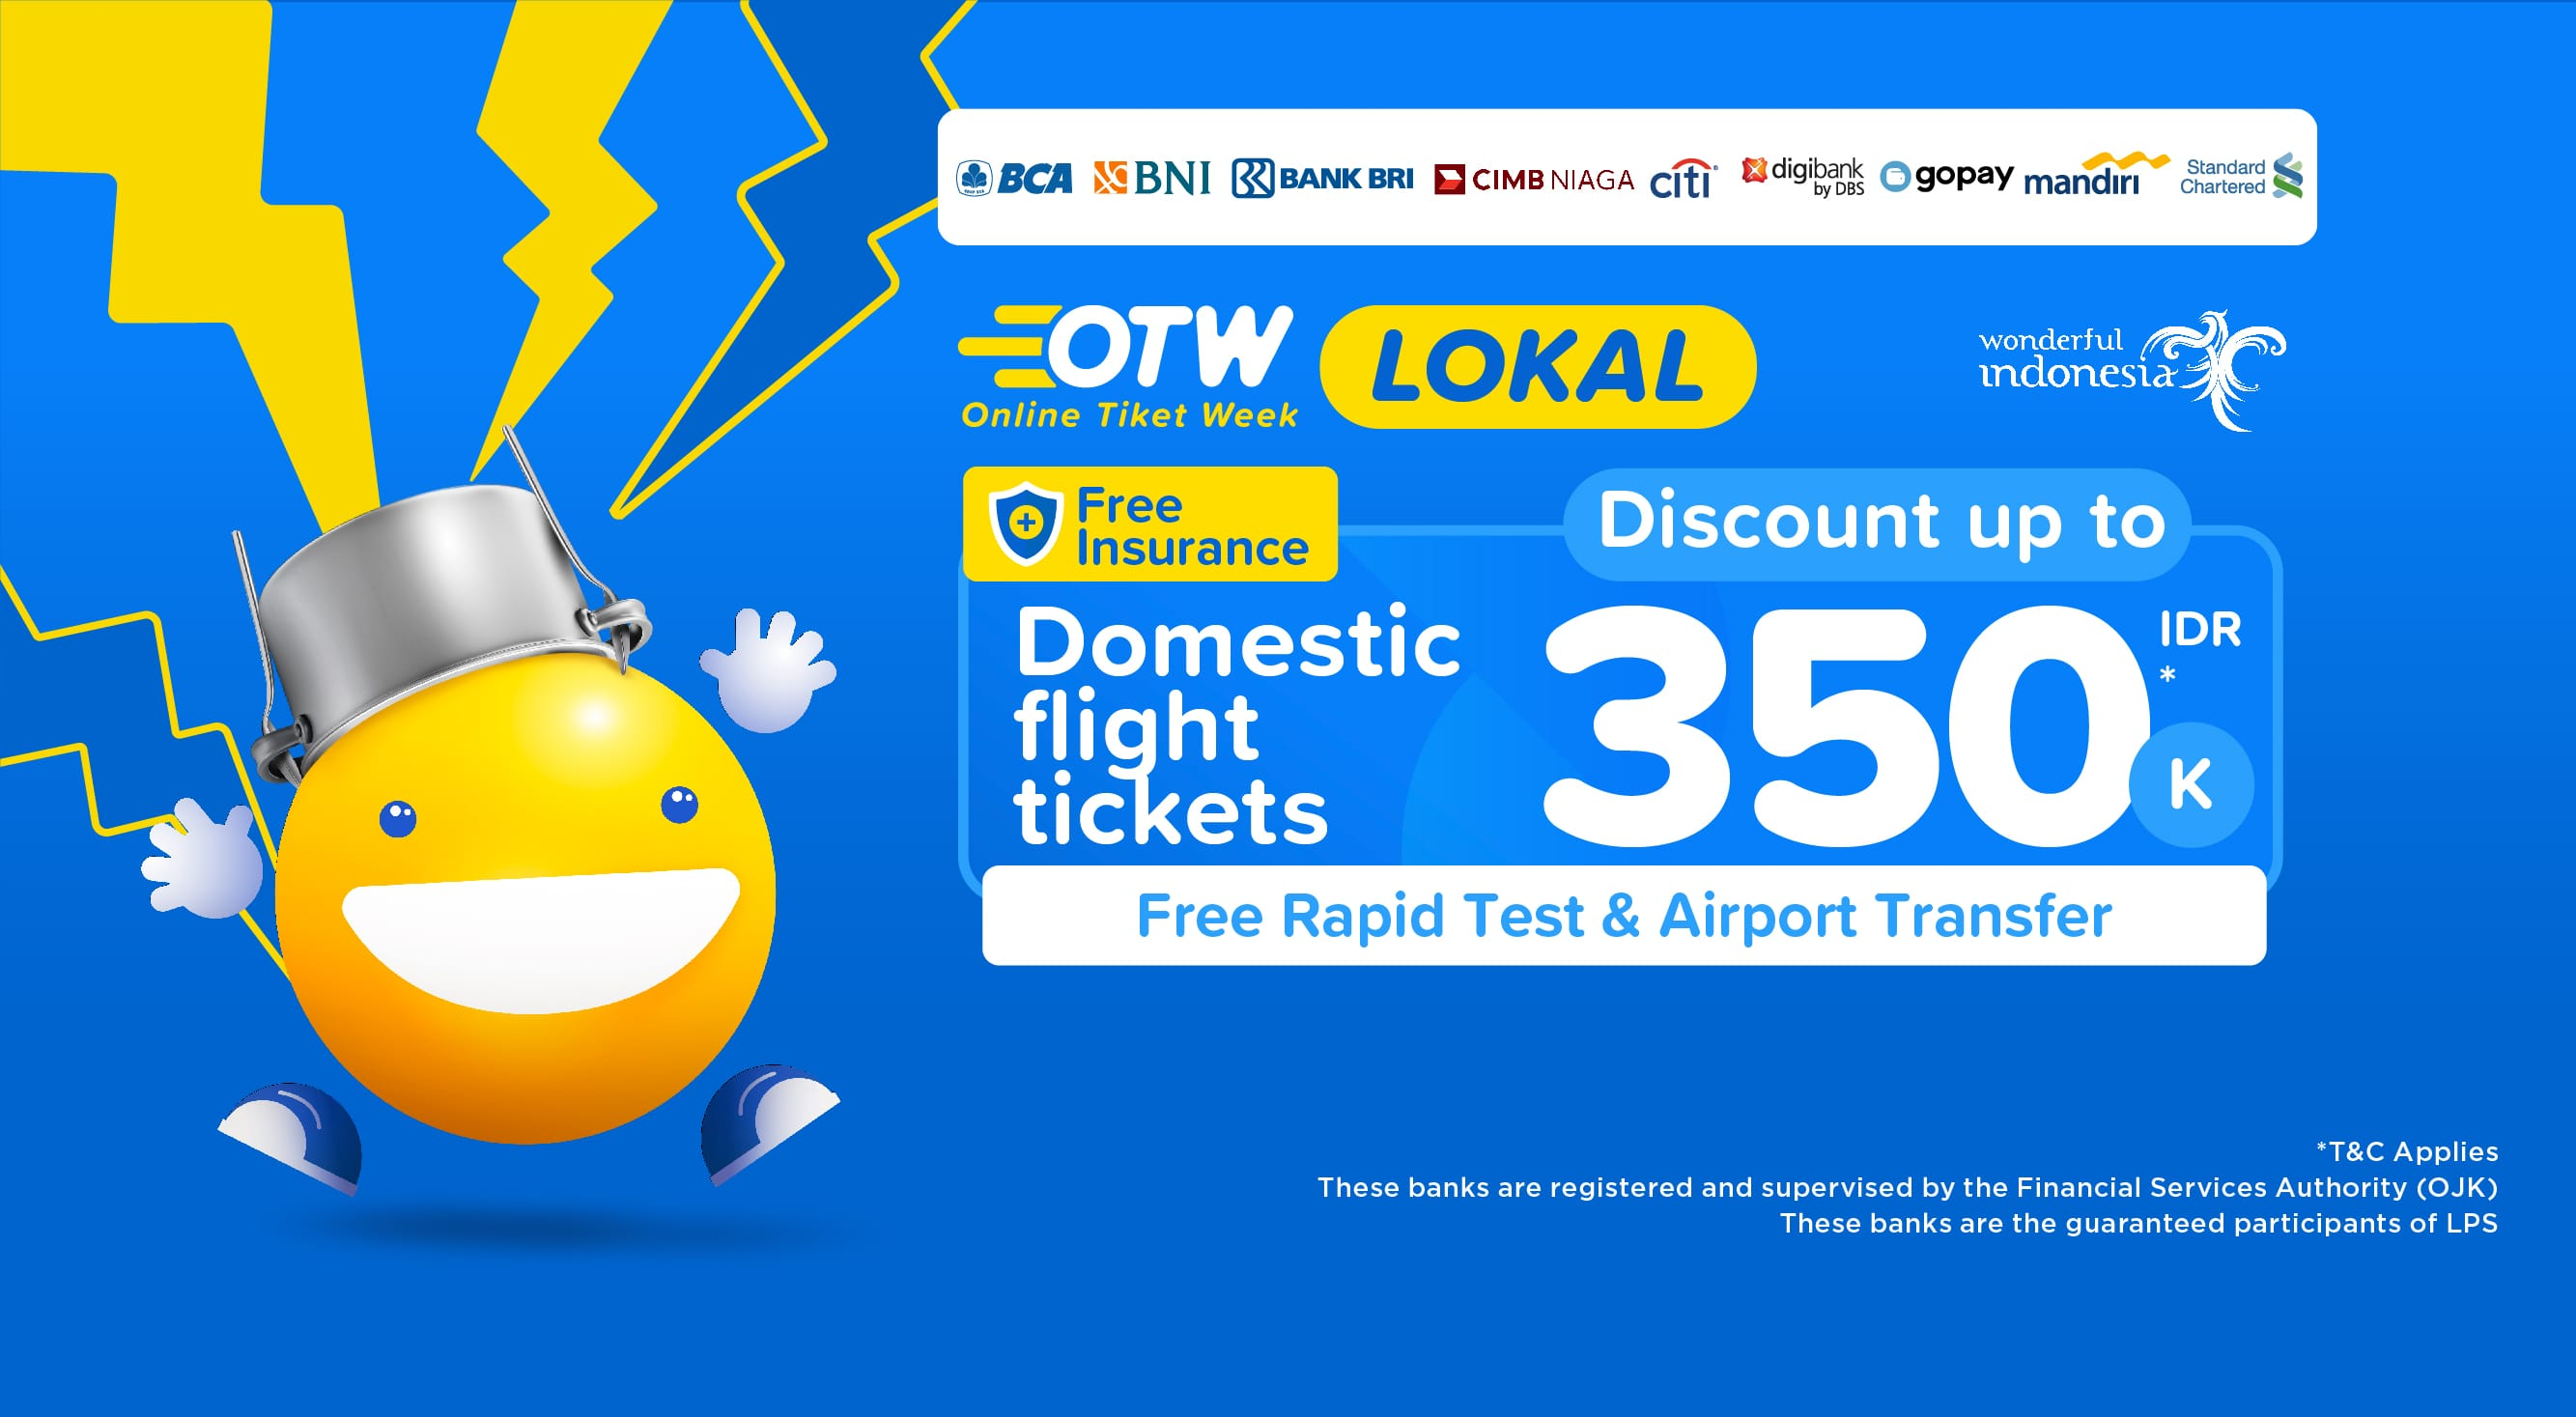 ⚡ OTW Lokal flight discount up to 350,000 IDR ⚡